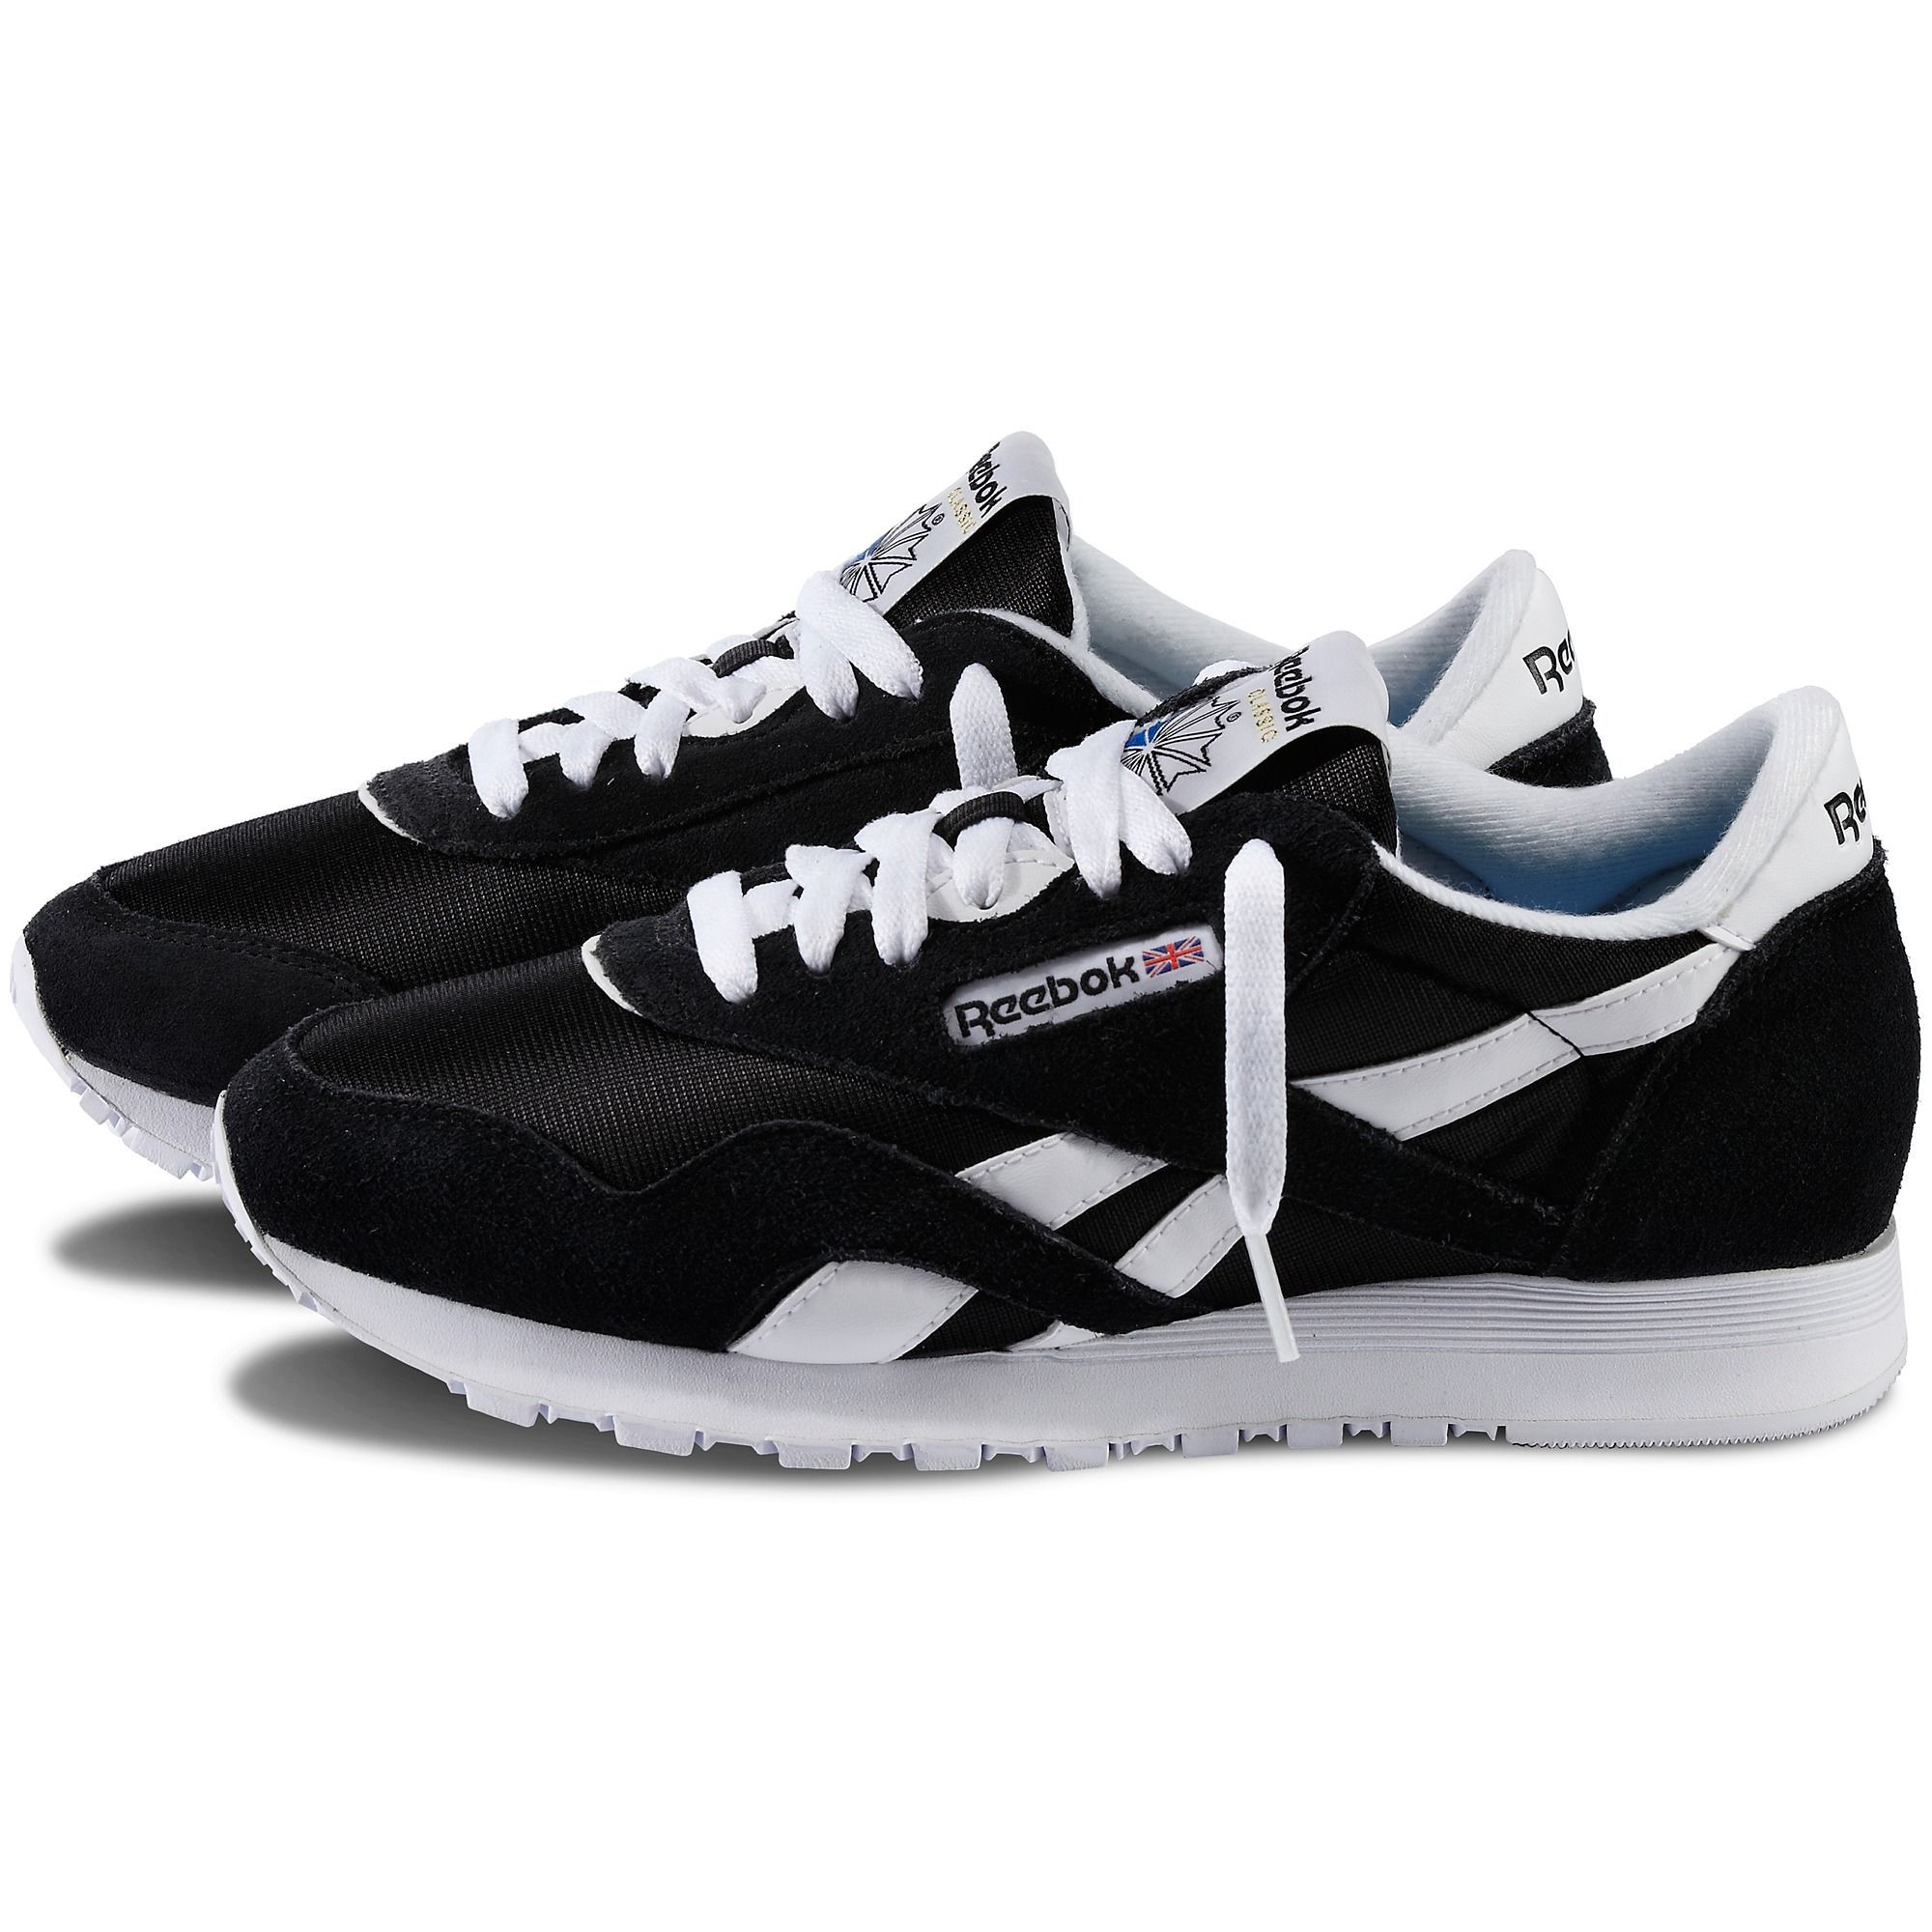 Reebok Shoes Women's Classic Nylon in BlackWhite Size 5